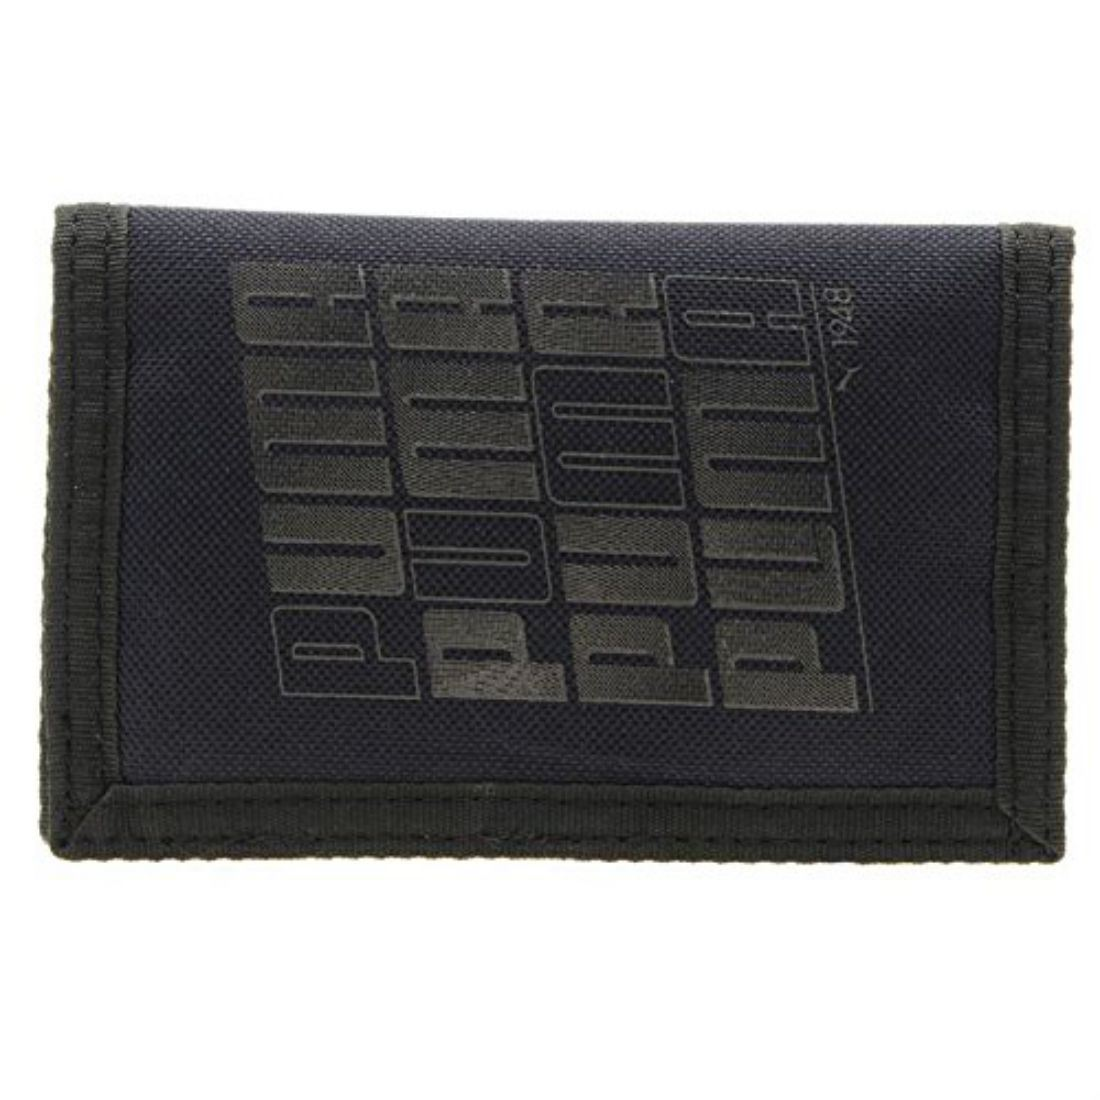 Puma Mens Pioneer Wallet 52 Multiple Card Slots Wallet Purse